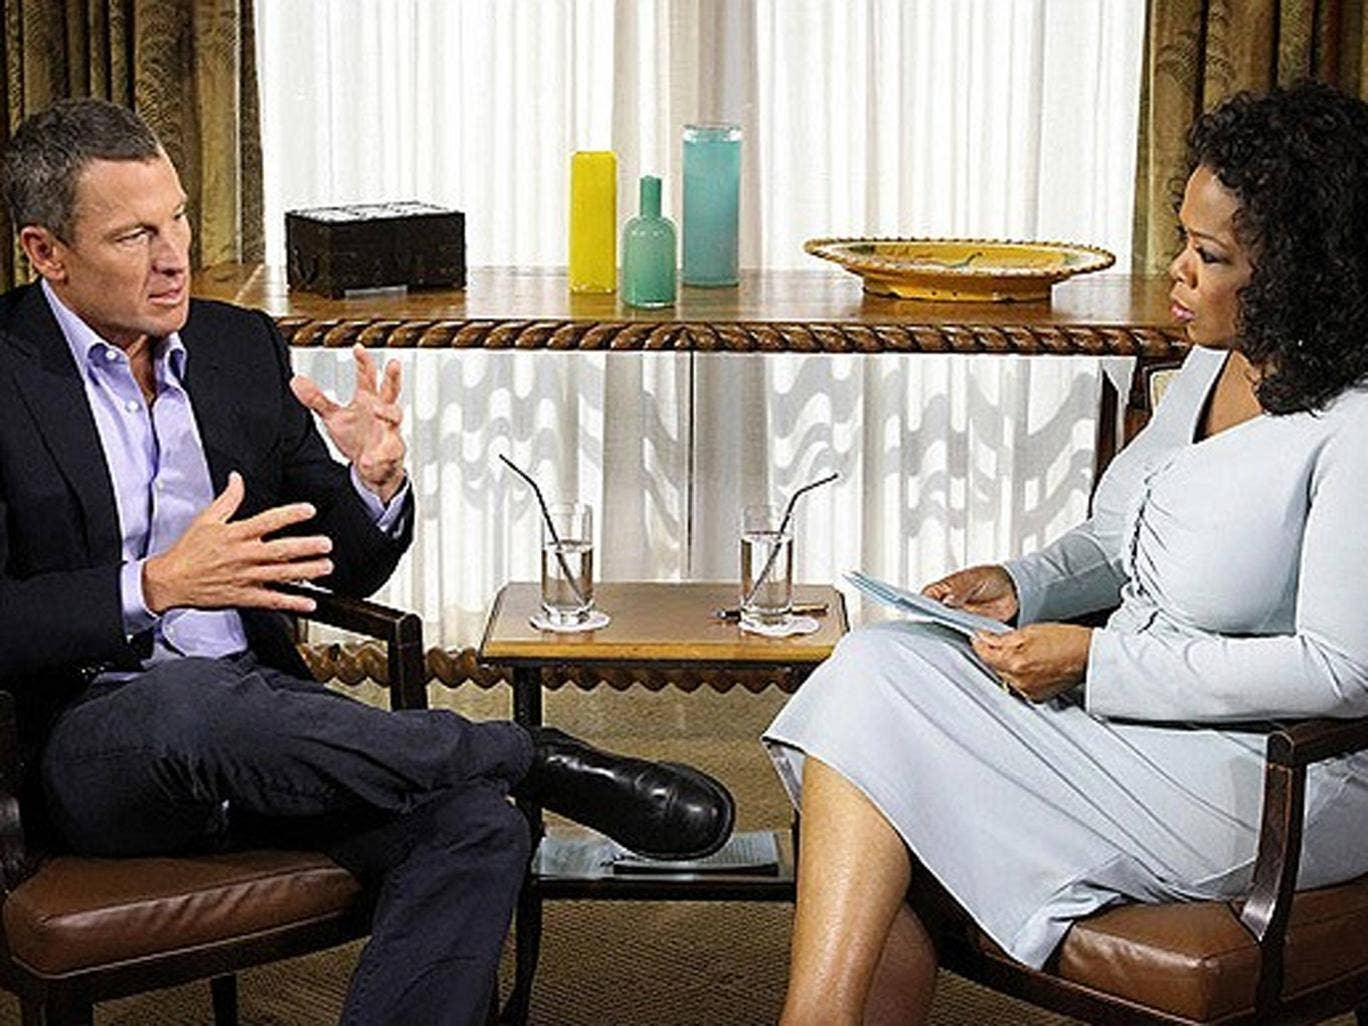 Lance Armstrong talks to Oprah Winfrey